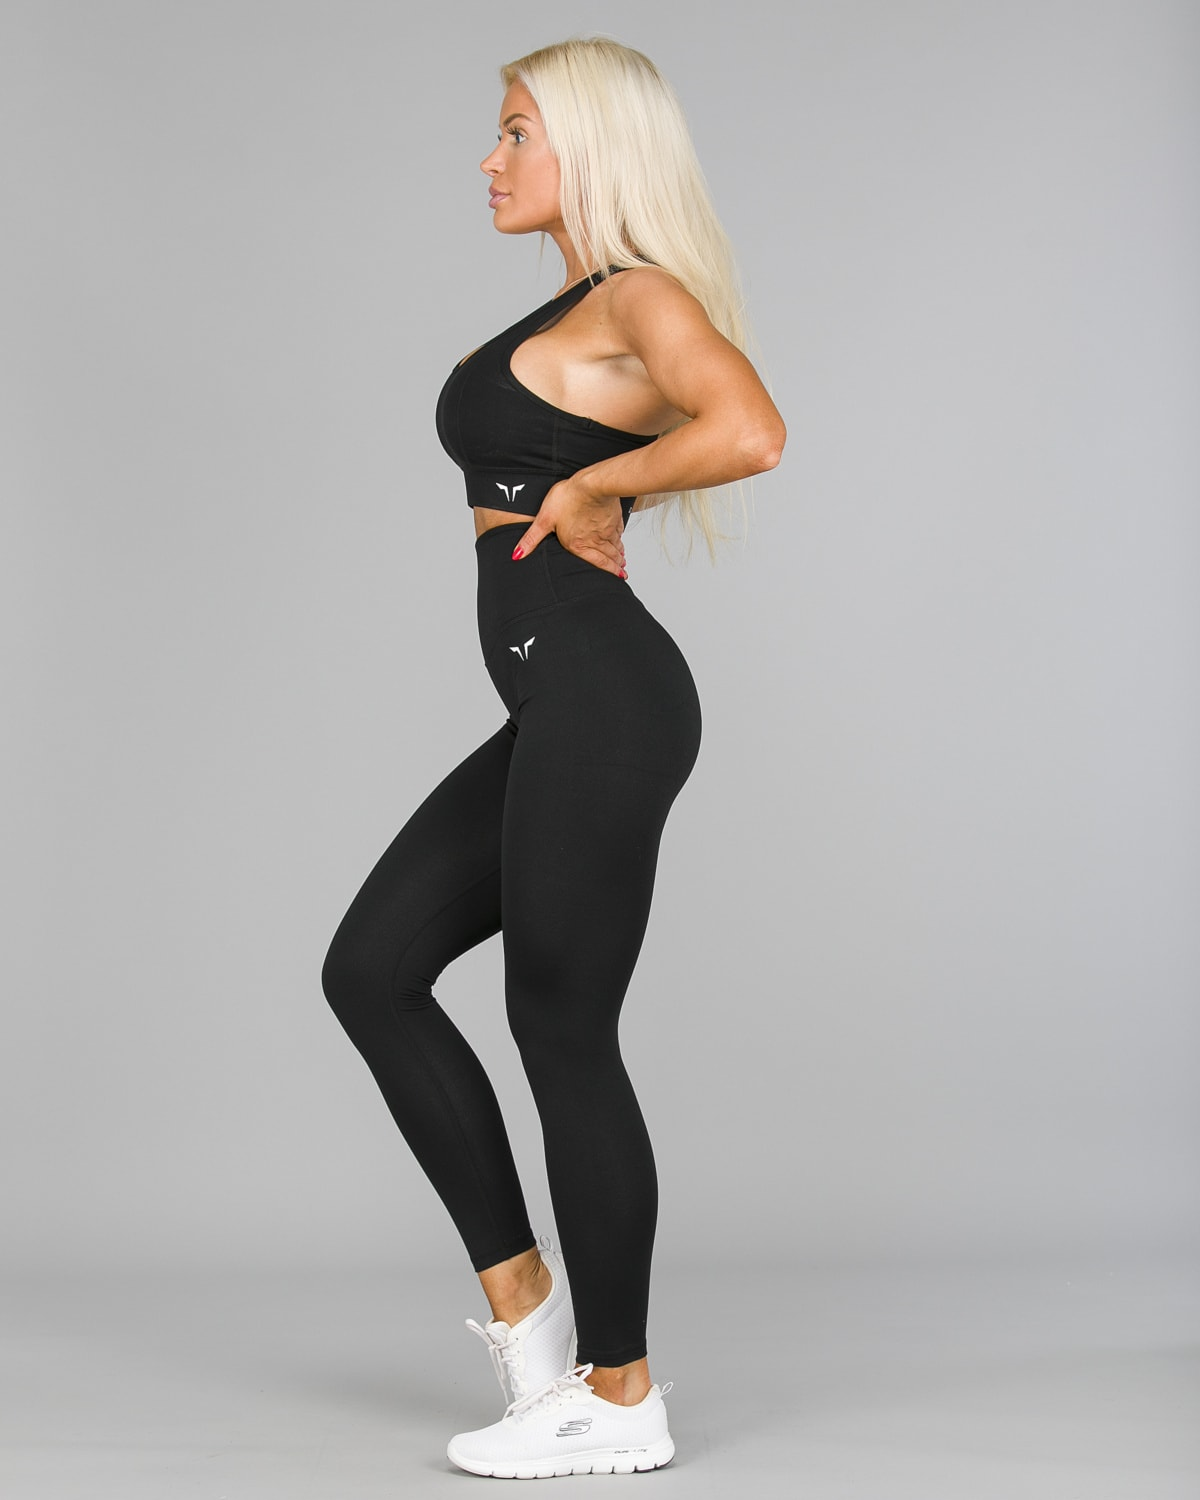 Squat Wolf – Hera Leggings – Black3